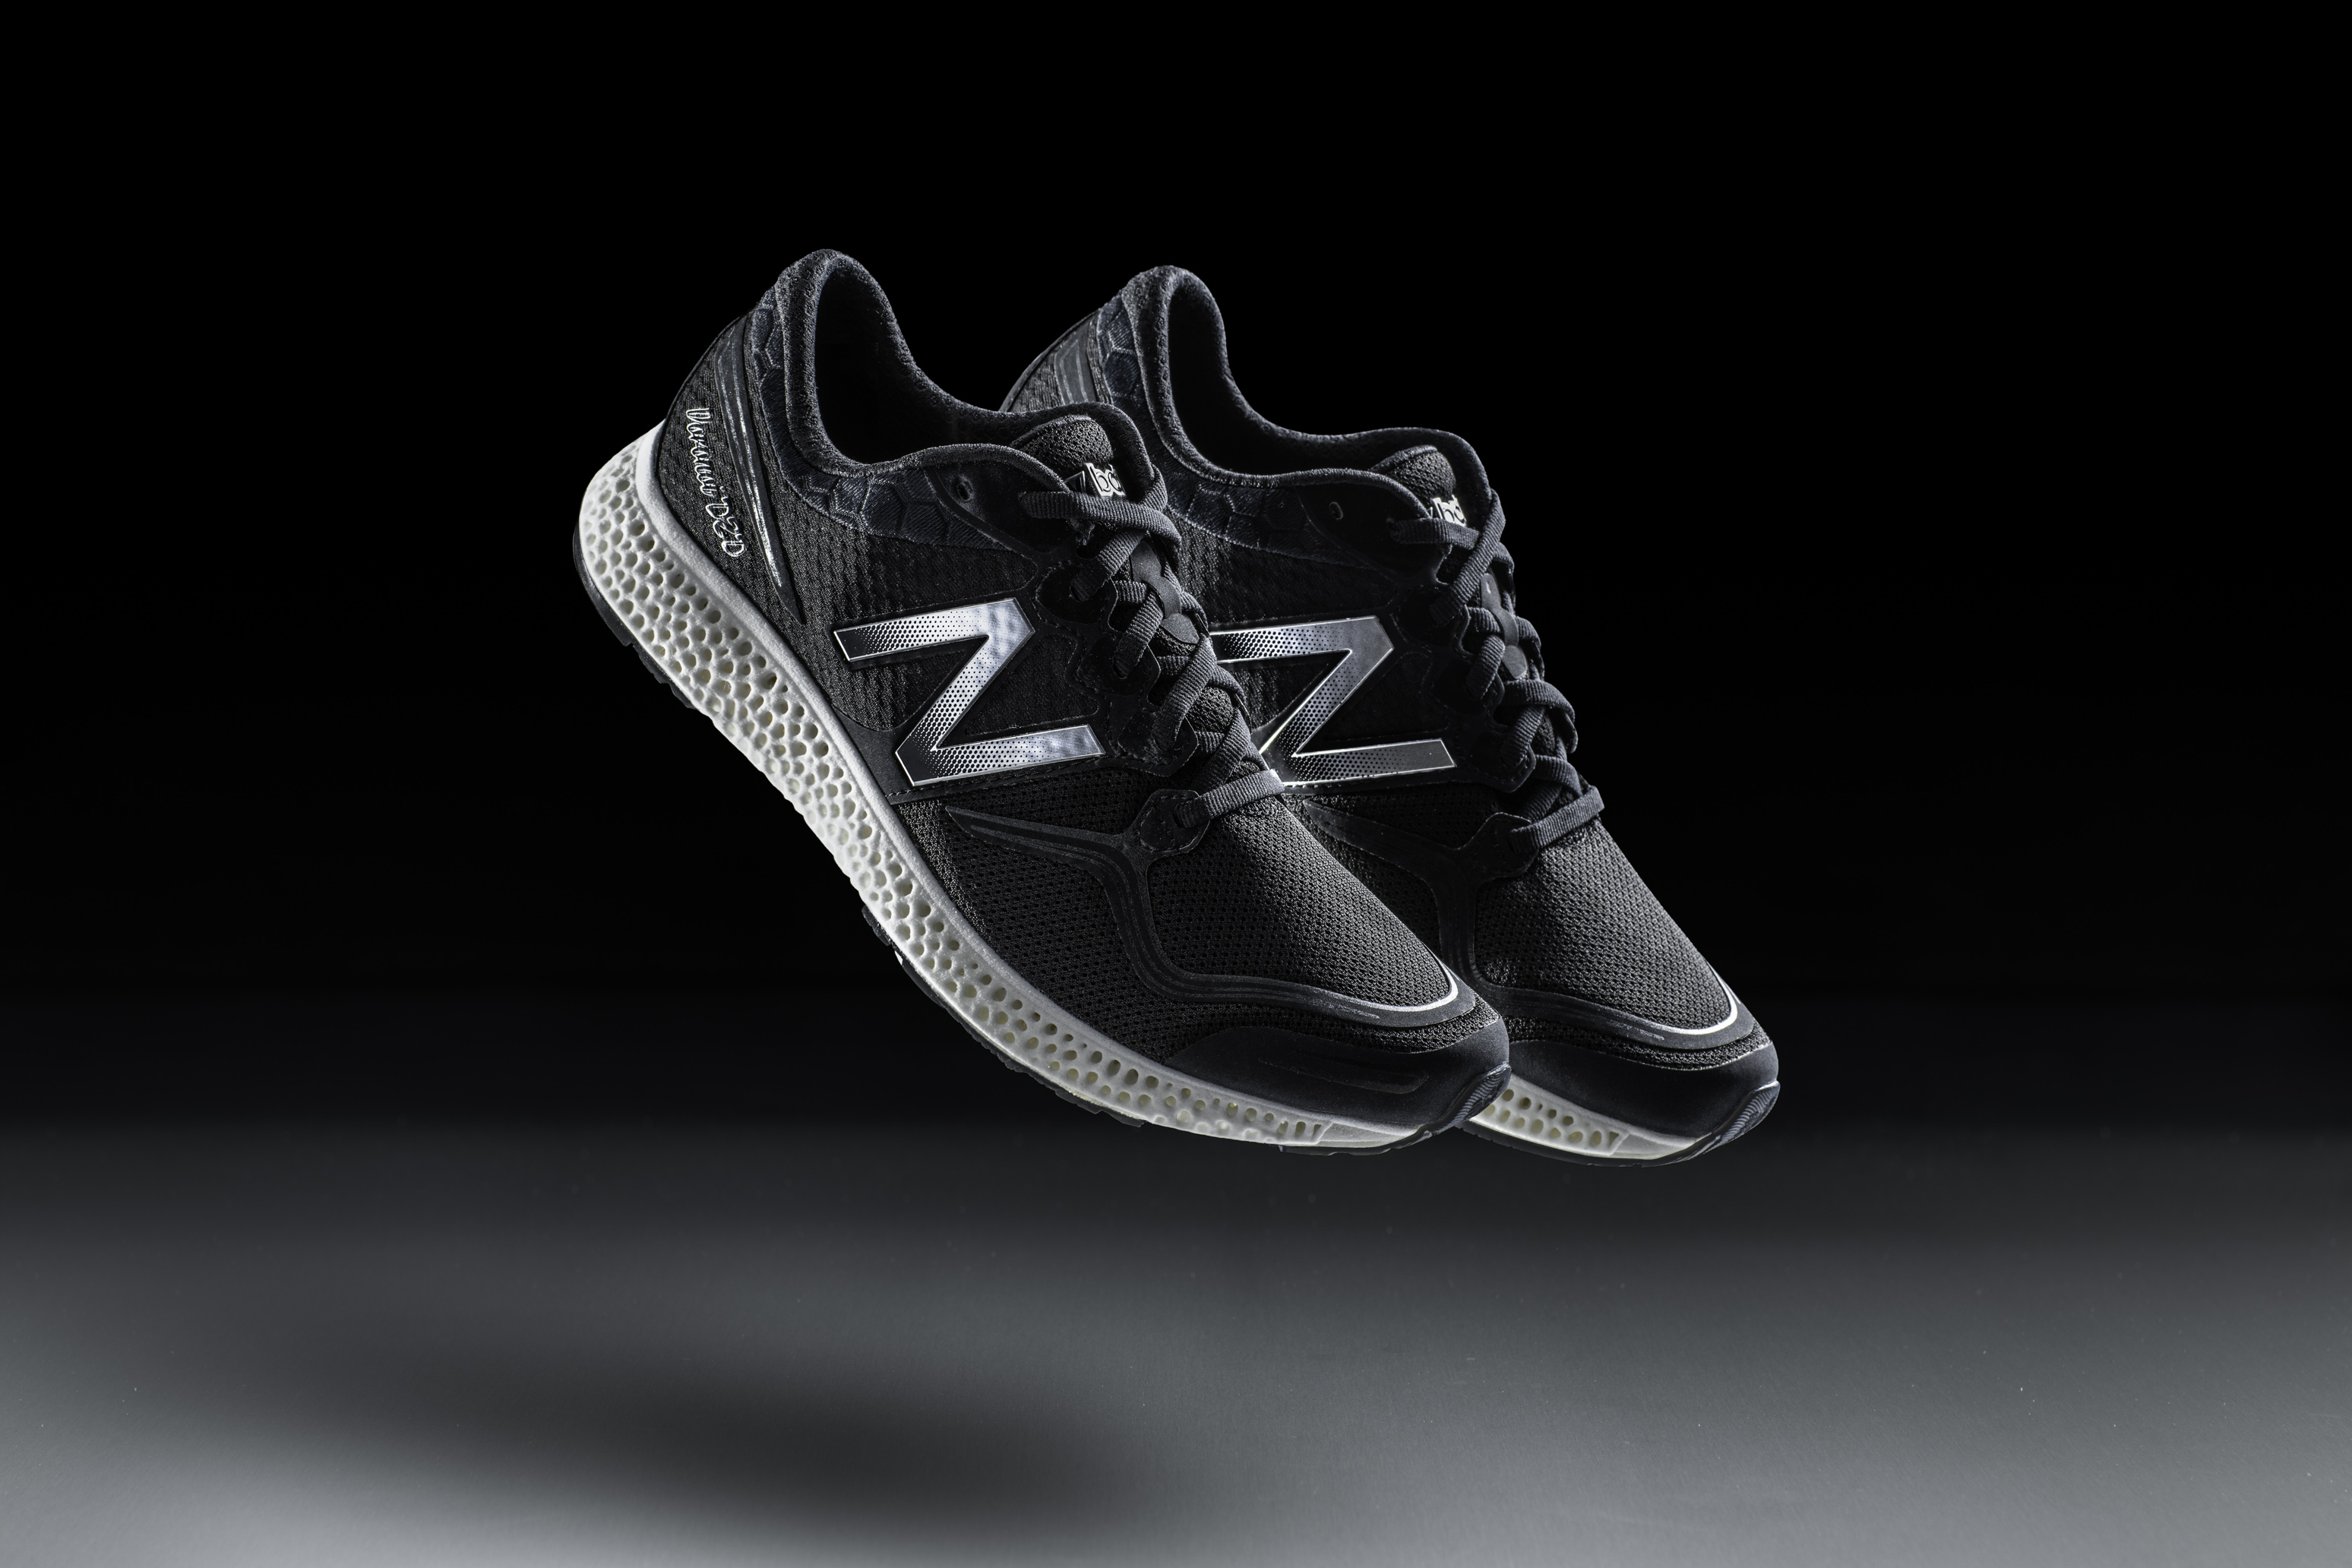 uk availability c693b db1a3 New Balance, Adidas, Nike: Who's Winning the 3D-Printed Shoe ...